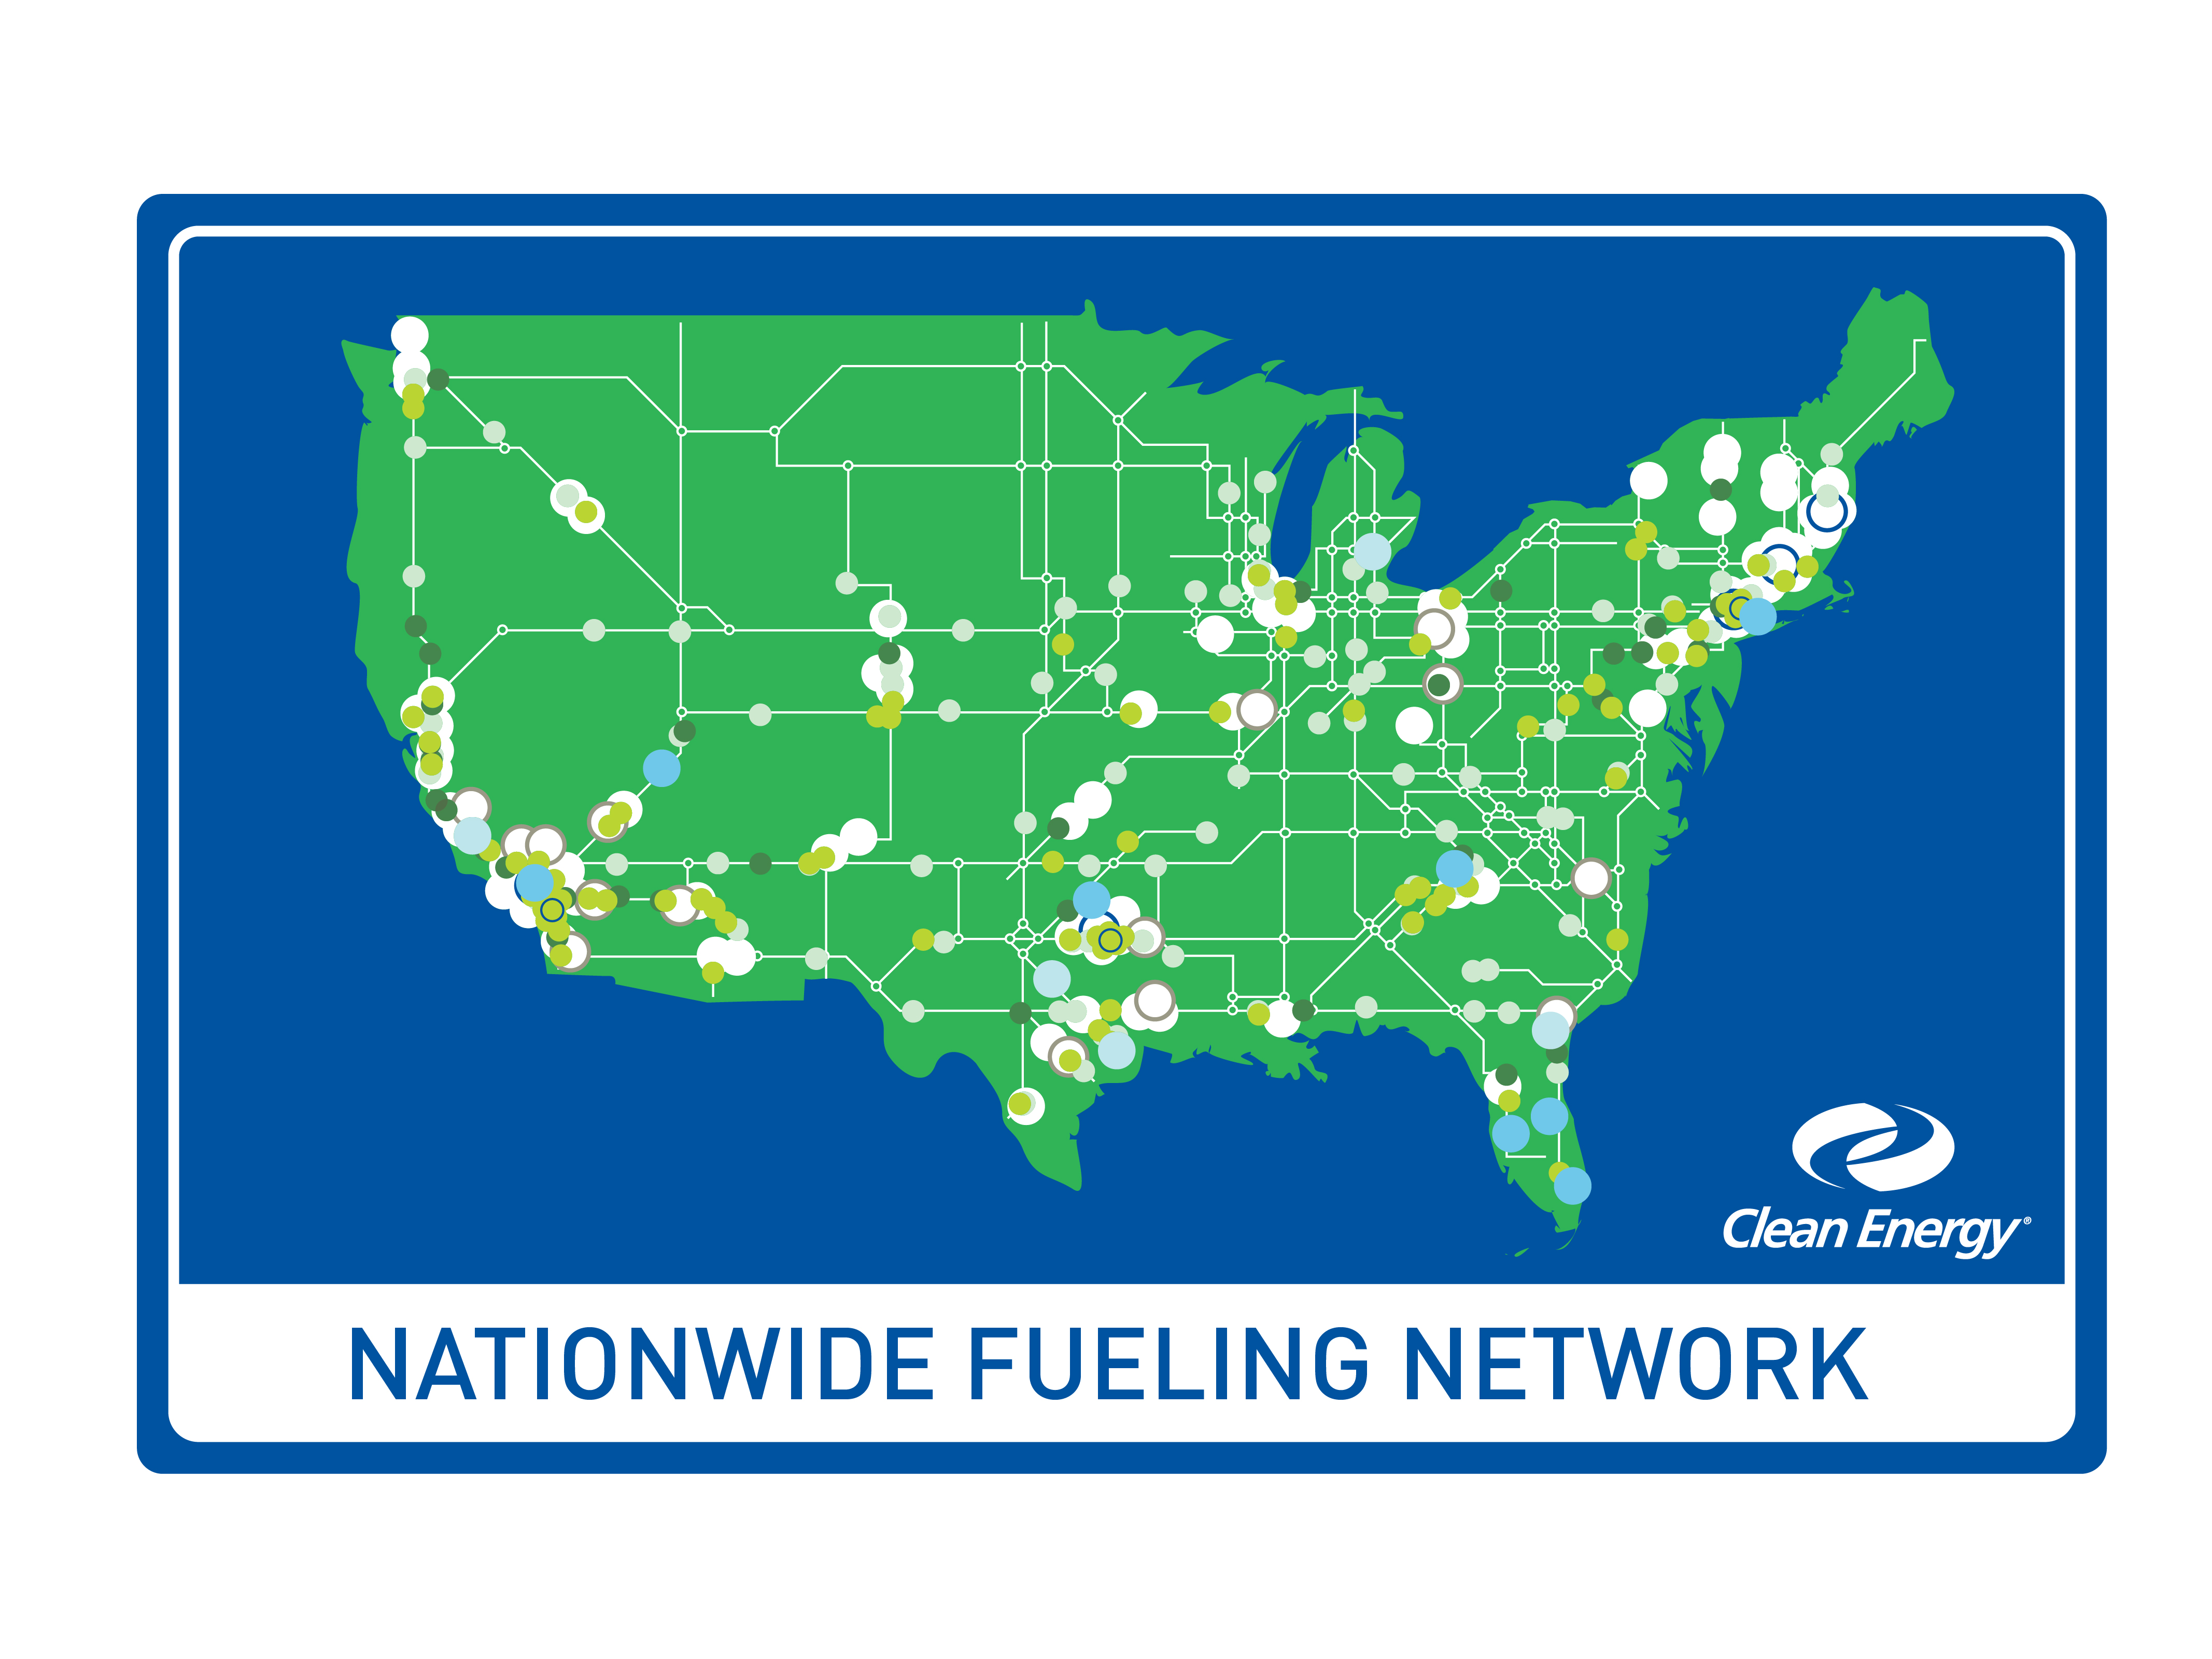 Clean energy corporate clean energy fuels download the nationwide fueling network map download g gumiabroncs Image collections